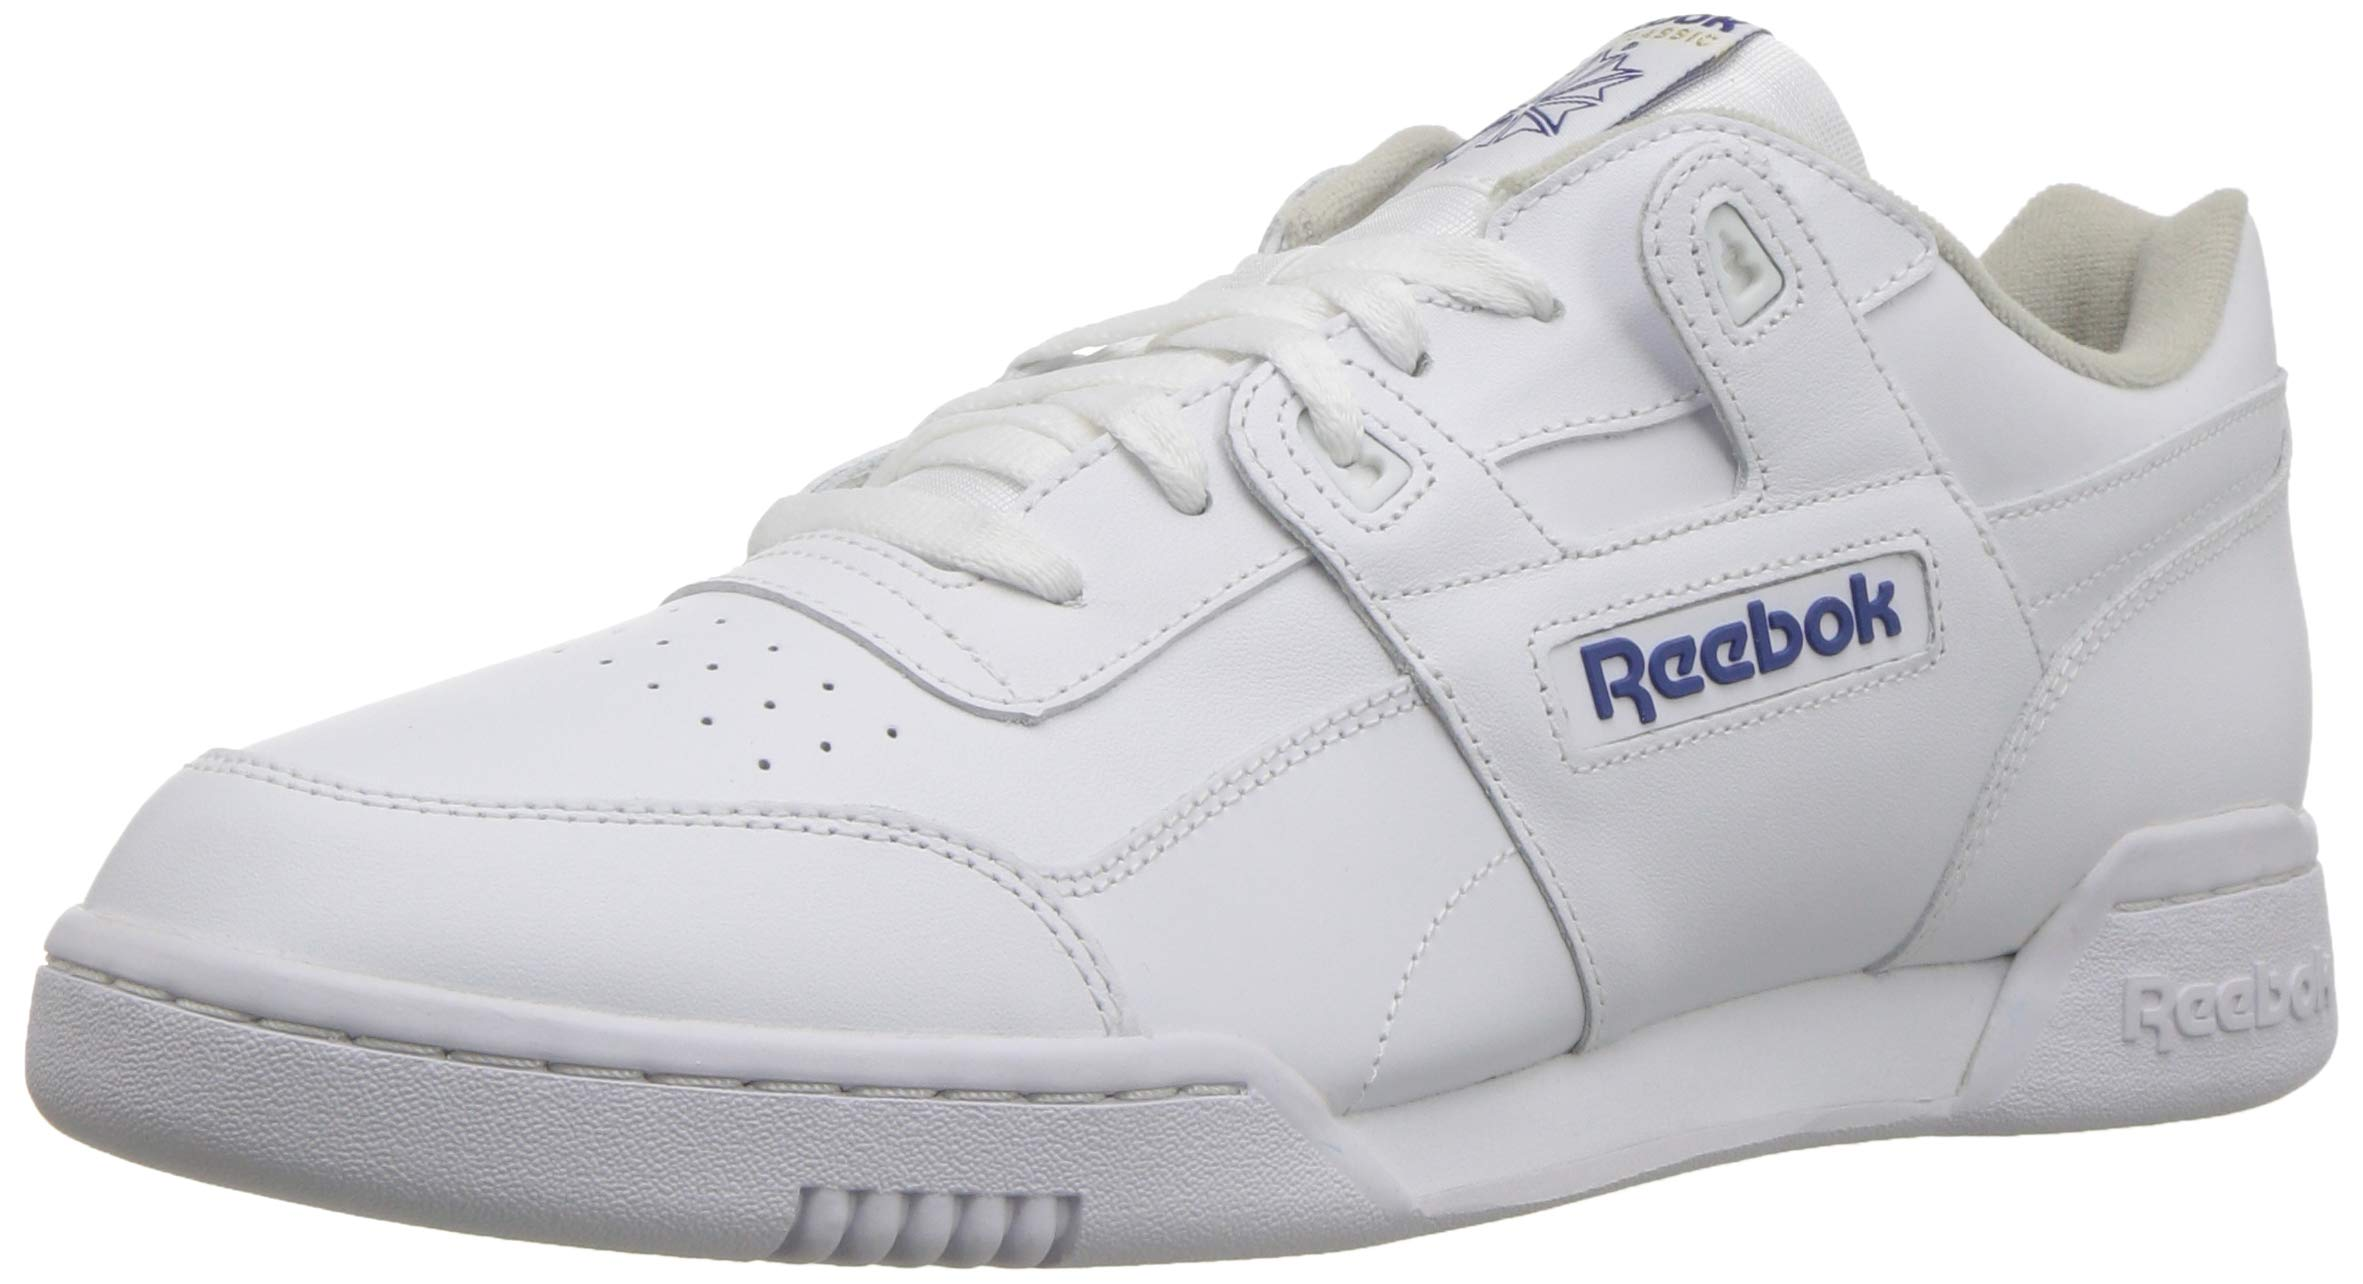 c712db3de8c Galleon - Reebok Men s Workout Plus Cross Trainer